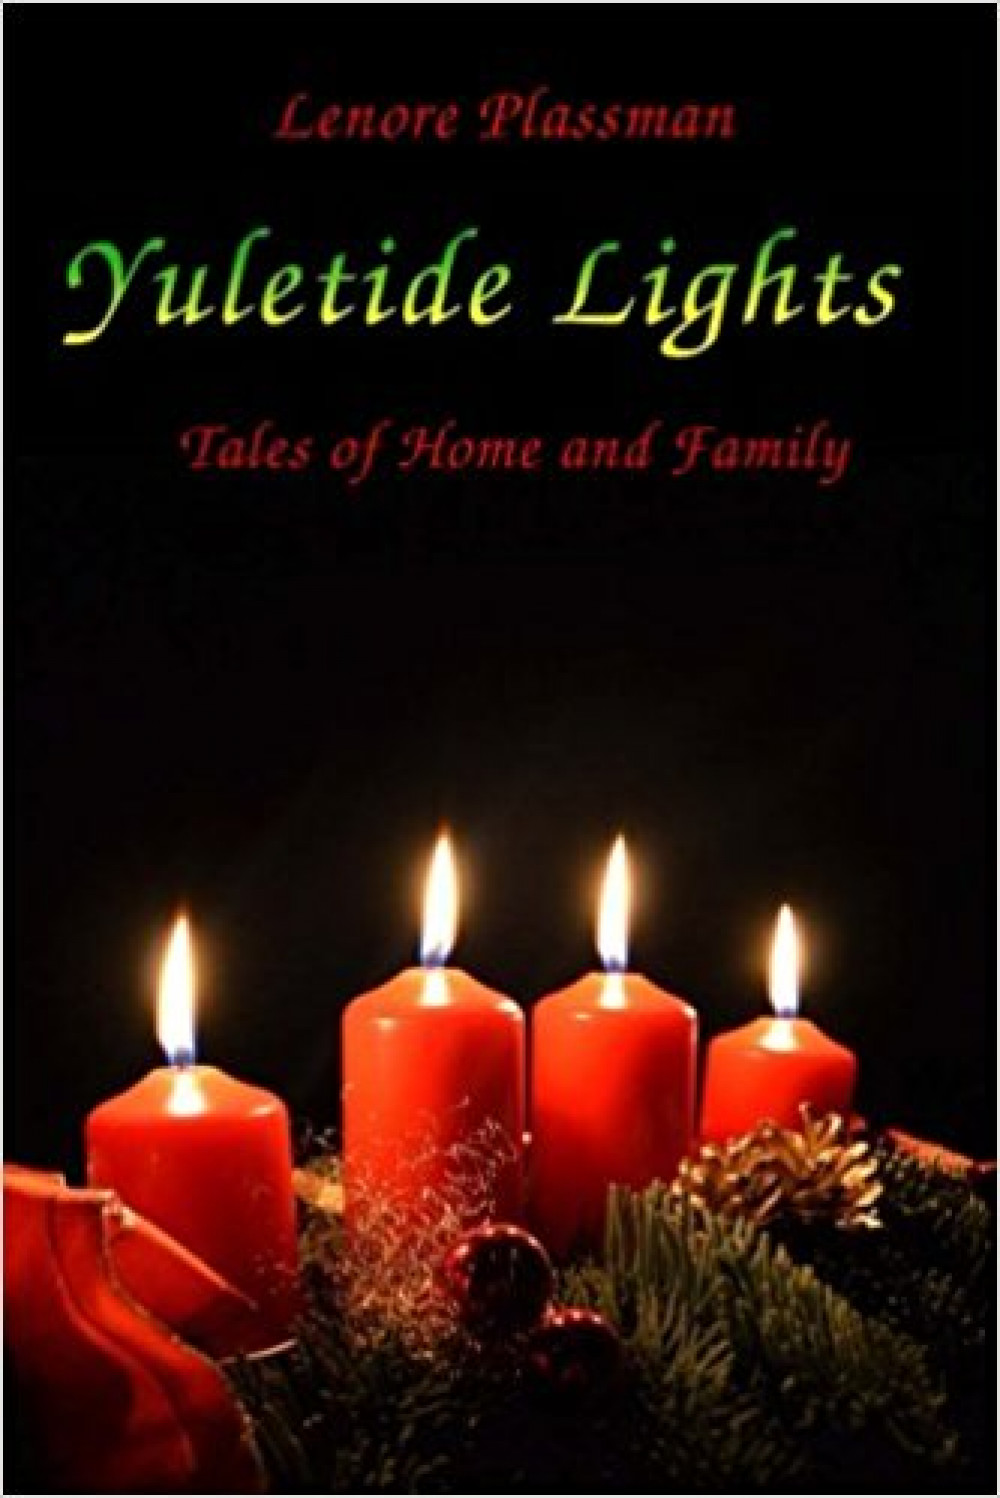 Yuletide Lights: Tales of Home and Family 2nd Edition